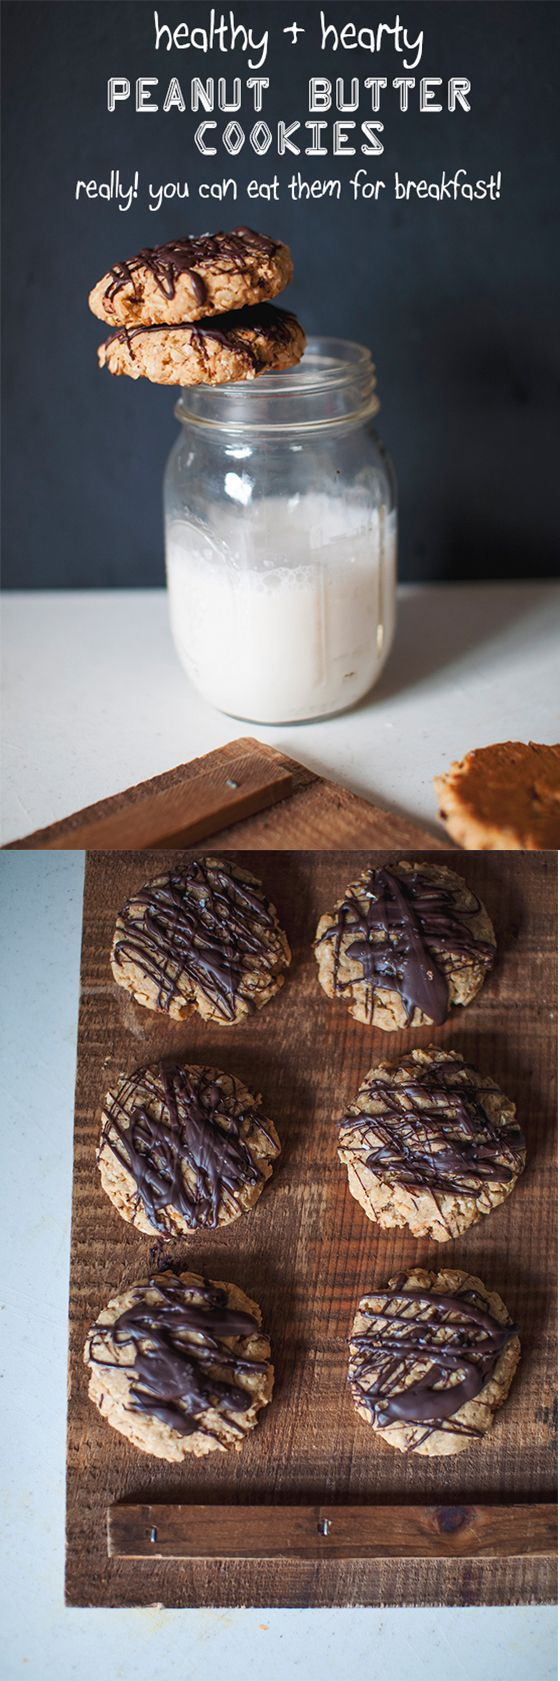 Healthy Peanut Butter Cookies you can eat for BREAKFAST! // neverhomemaker